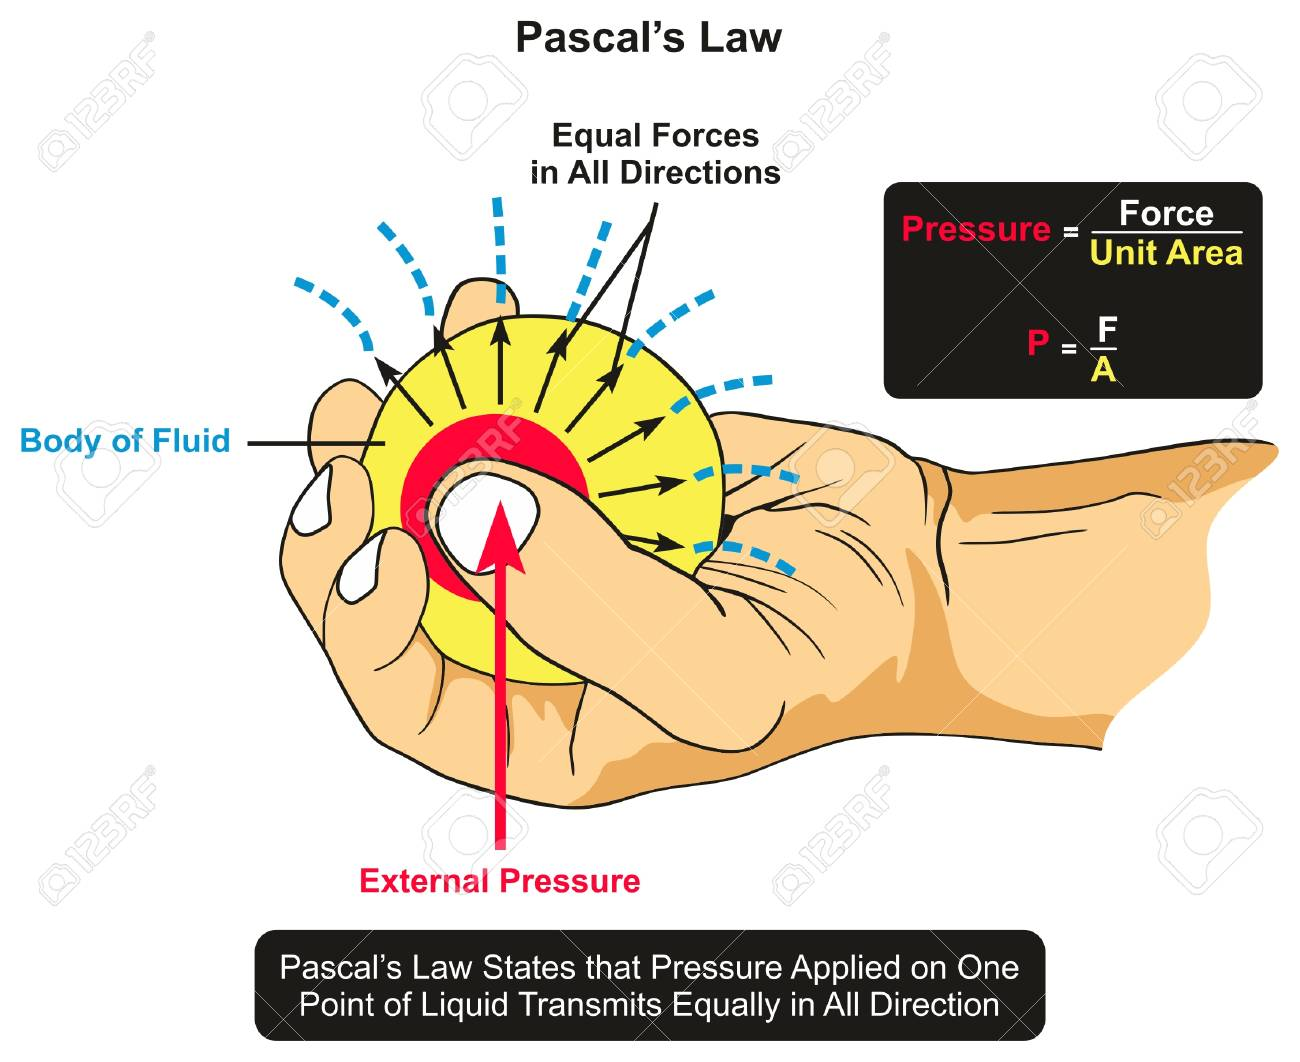 hight resolution of pascal s law infographic diagram showing an example of body of fluid held by hand and an external pressure applied by thumb and the forces transmits equally